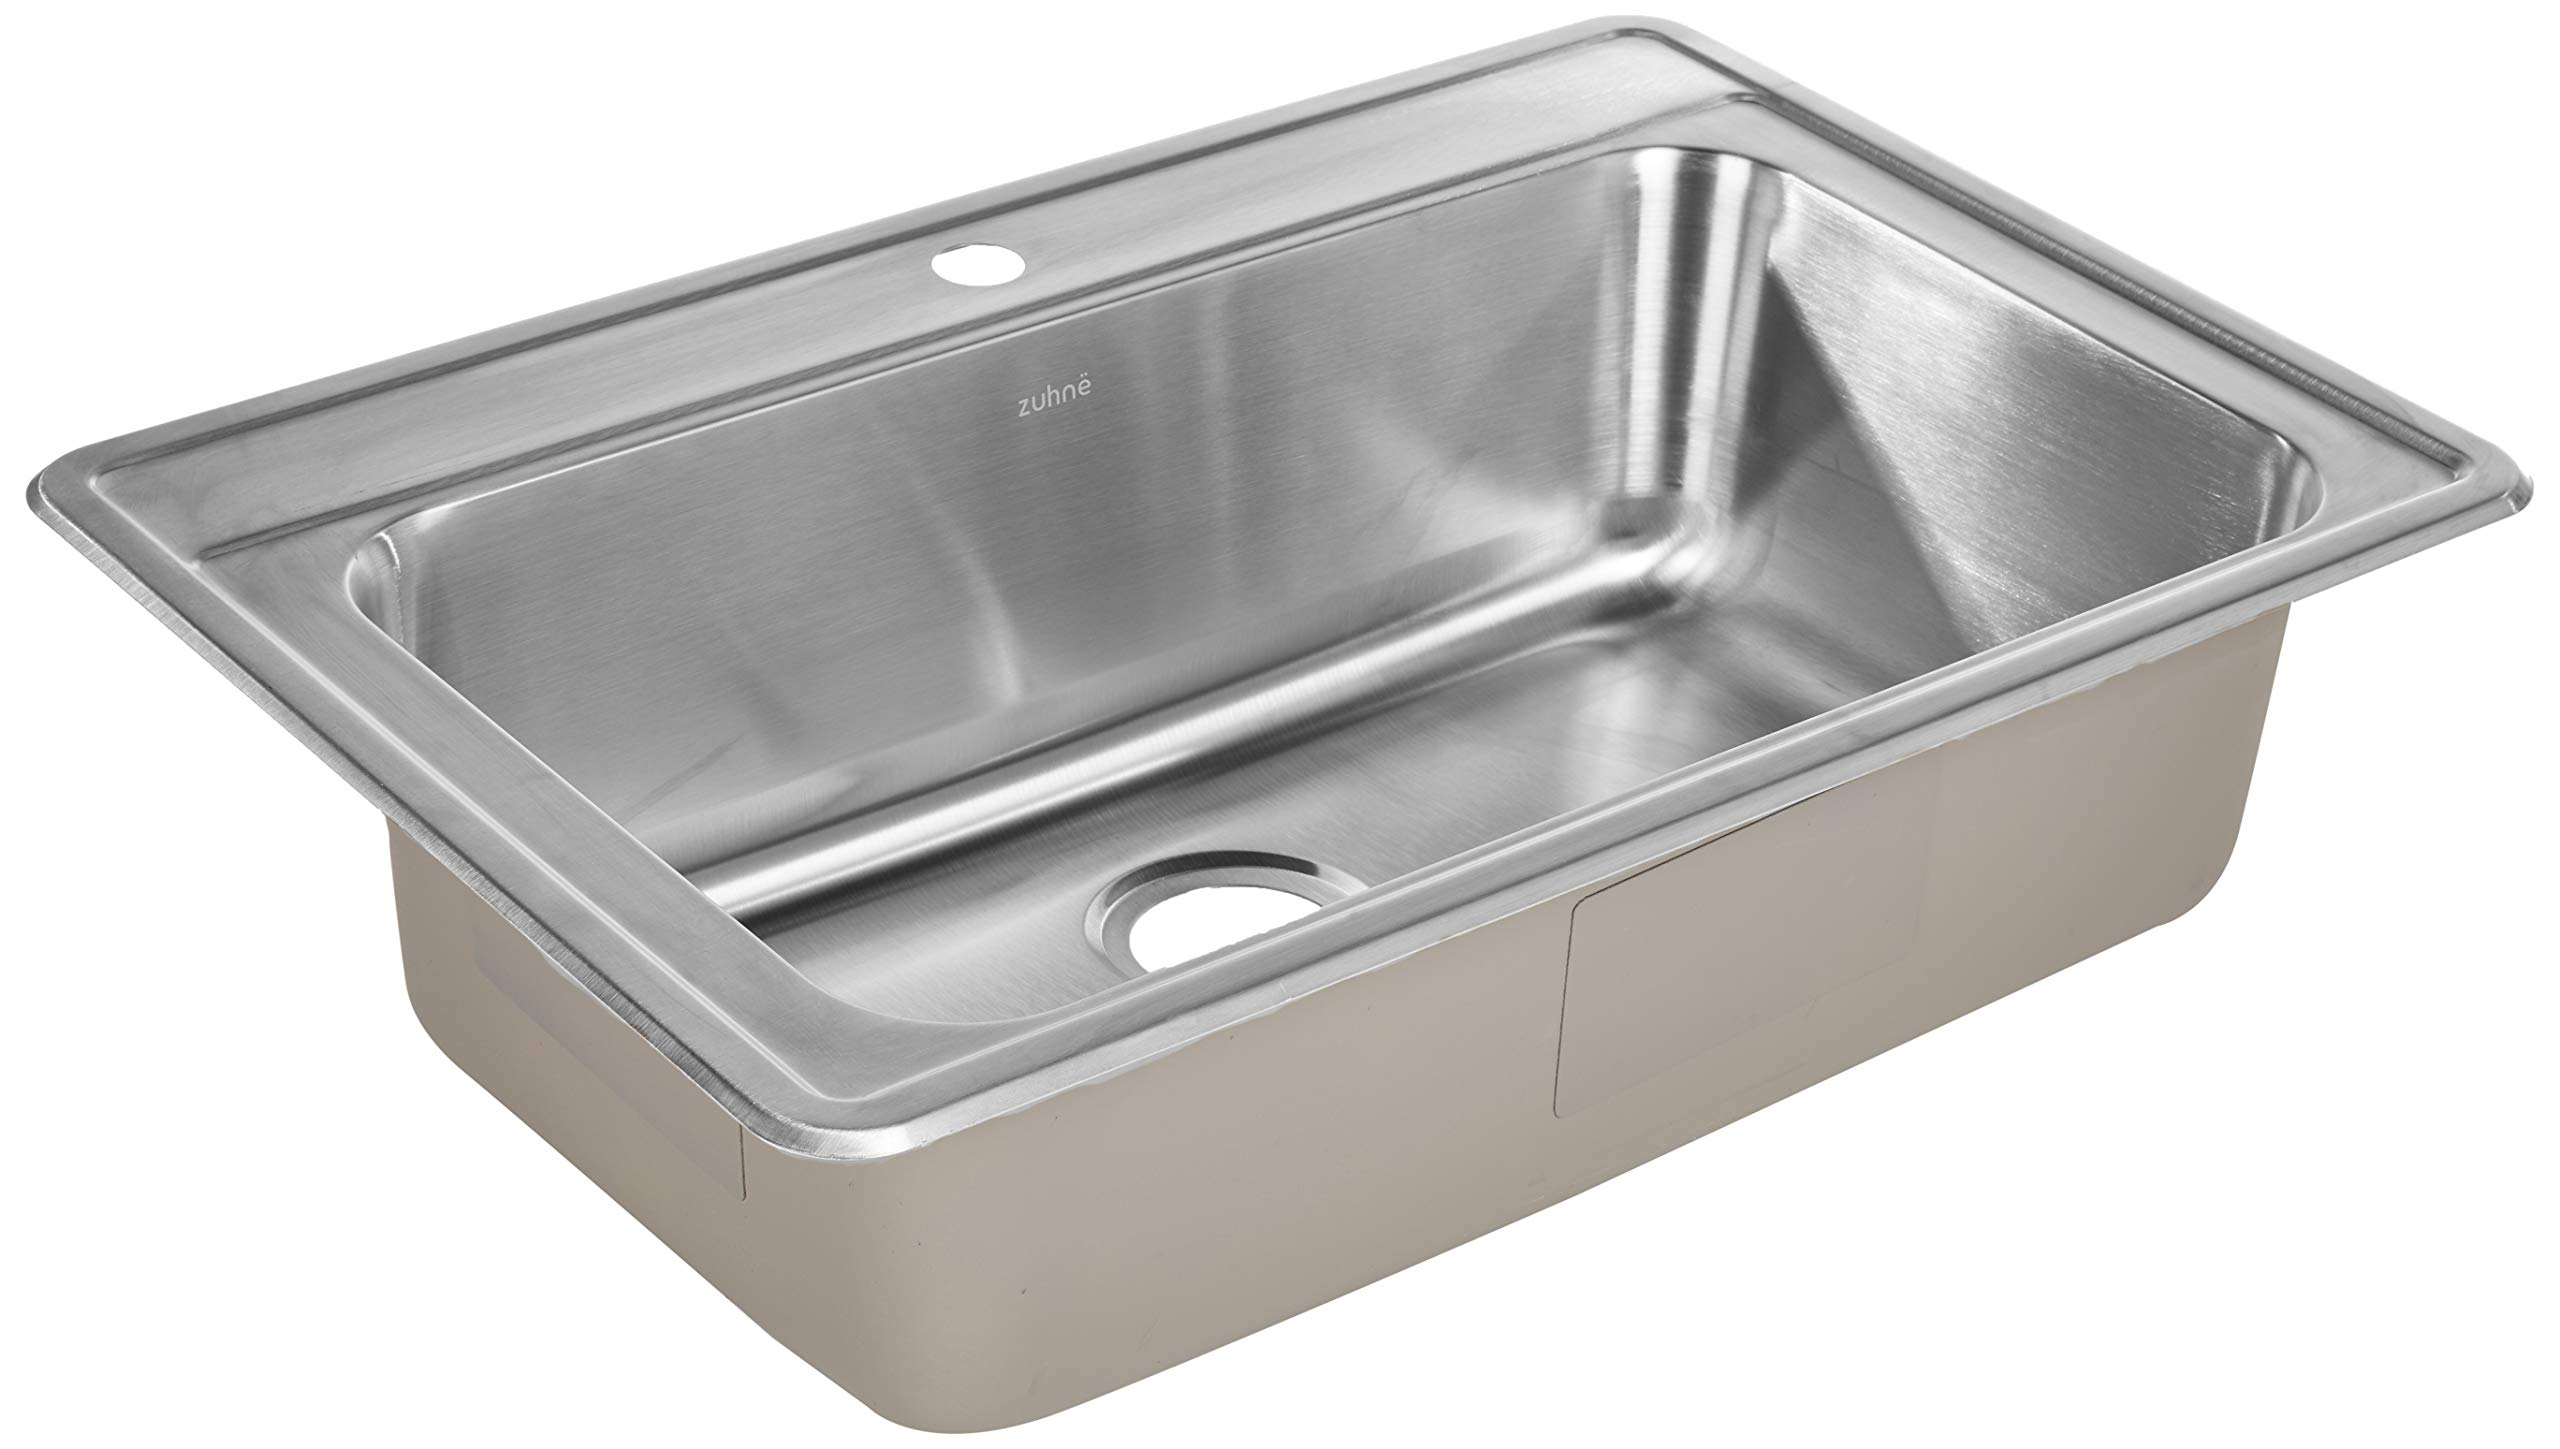 ZUHNE Drop-In Top Mount or Over Mount One Deck Hole Single and Double Bowl Stainless Steel Kitchen Sink (33x22 Single) by Zuhne